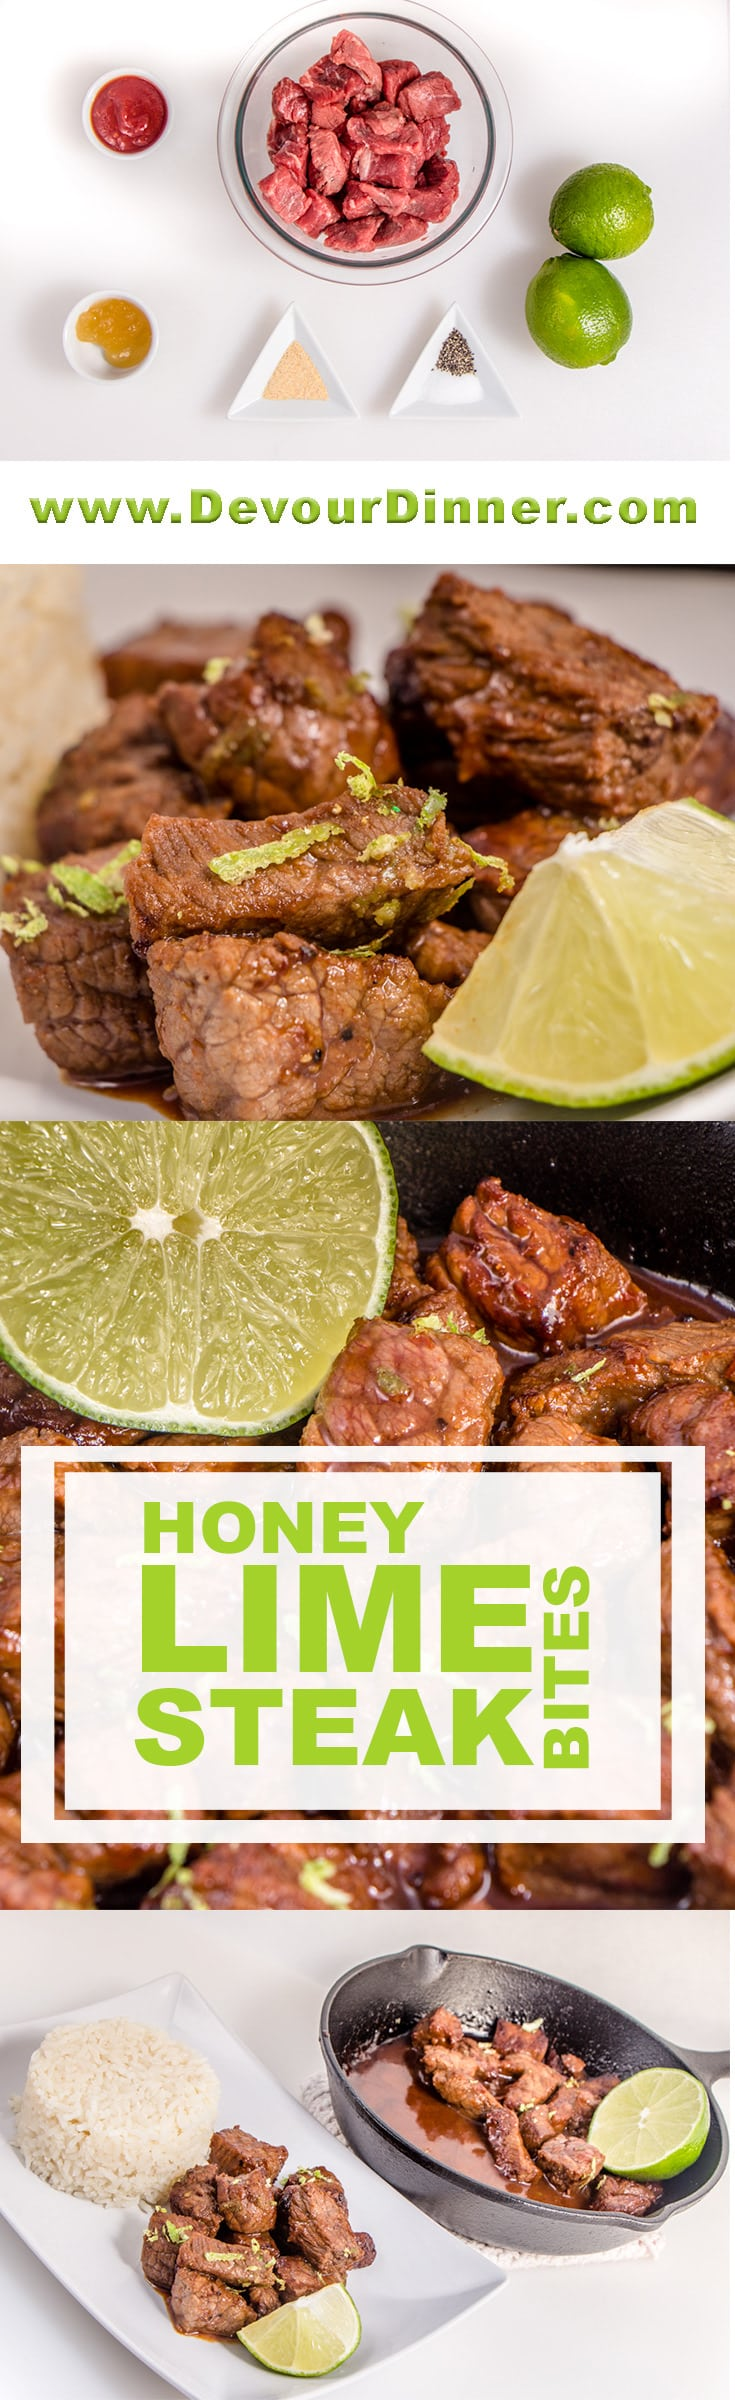 Chili Honey Lime Steak Bites are delicious. With a quick marinade full of fresh ingredients they will turn your ordinary steak into a real treat. Make these for a main course or even an appetizer. Anyway you serve up Chili Honey Lime Steak Bites you will love them. #devourdinner #recipes #Food #Foods #Foodblogger #yummy #easyrecipe #steak #honey #lime #Buzzfeast #Dinner #Appetizer